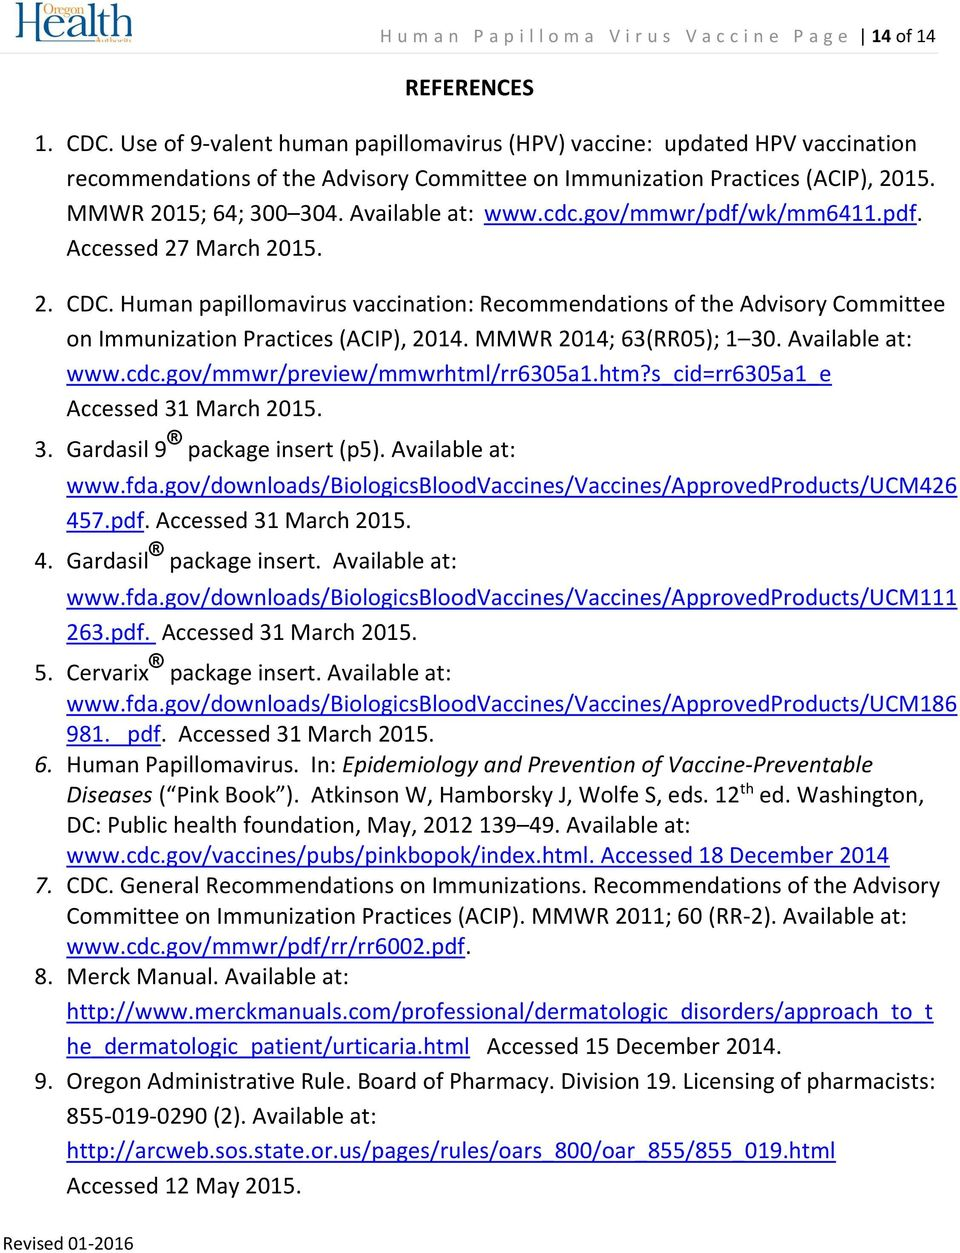 cdc.gov/mmwr/pdf/wk/mm6411.pdf. Accessed 27 March 2015. 2. CDC. Human papillomavirus vaccination: Recommendations of the Advisory Committee on Immunization Practices (ACIP), 2014.